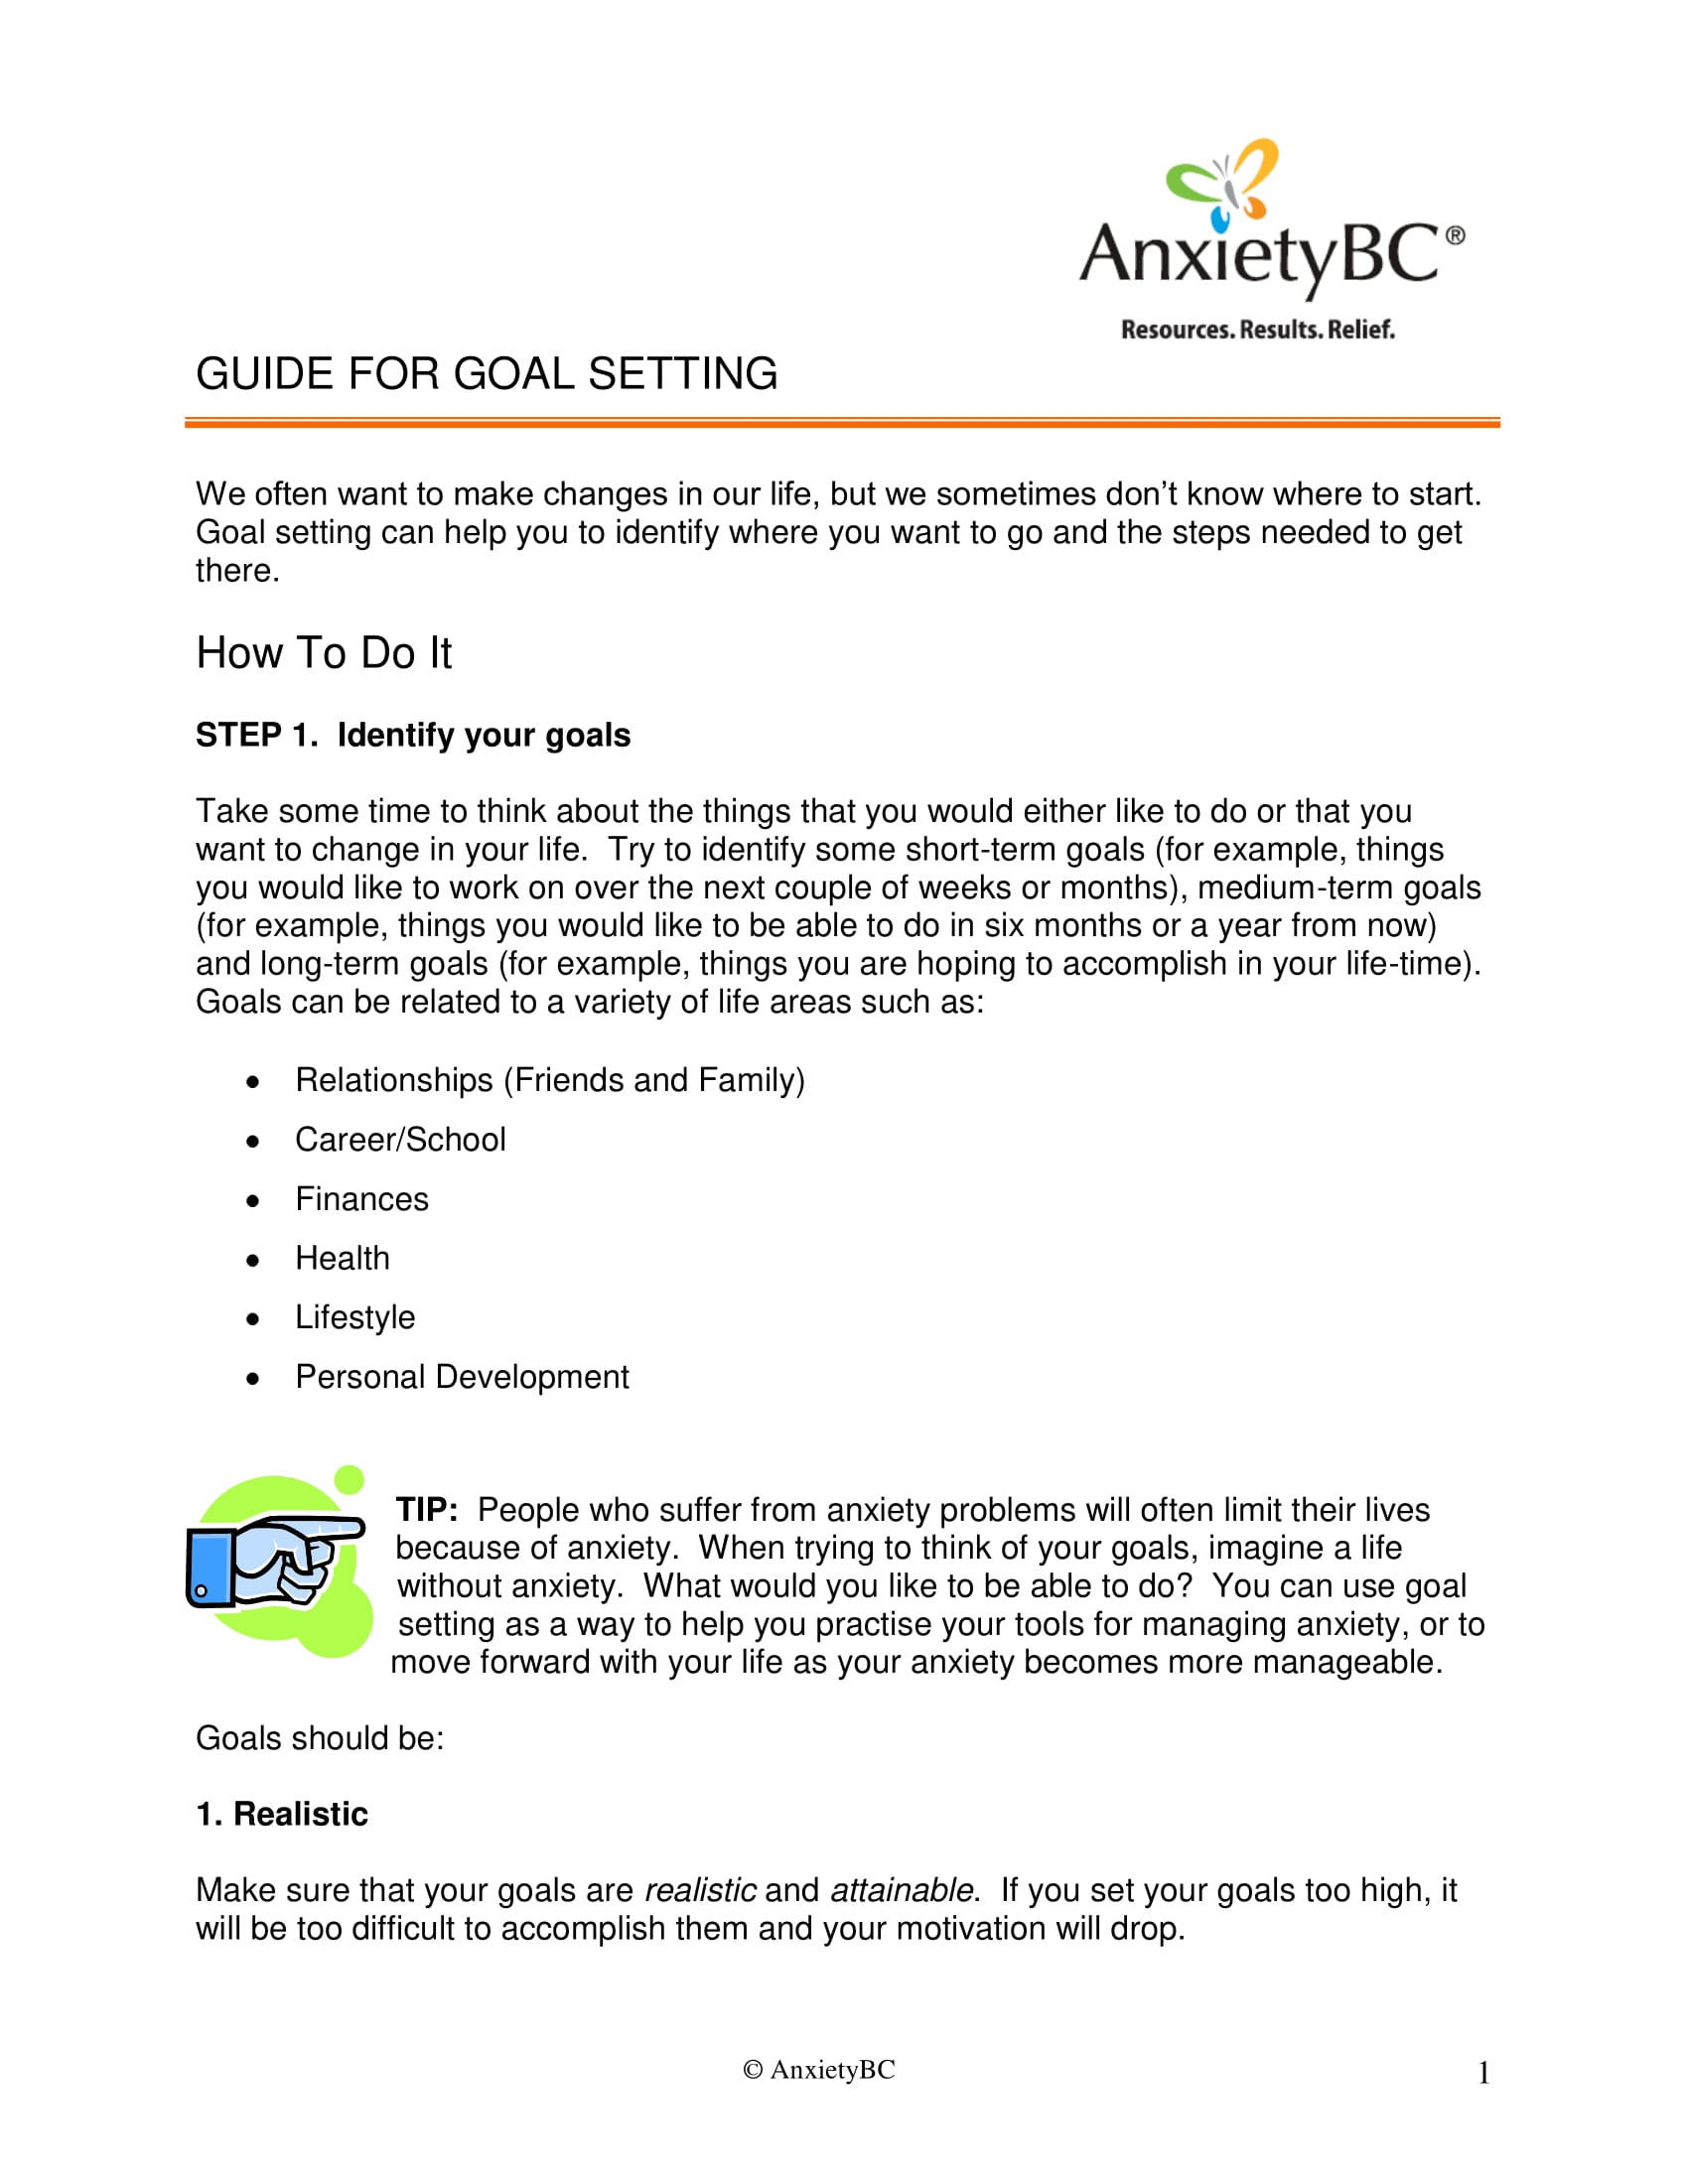 guide for goal setting example